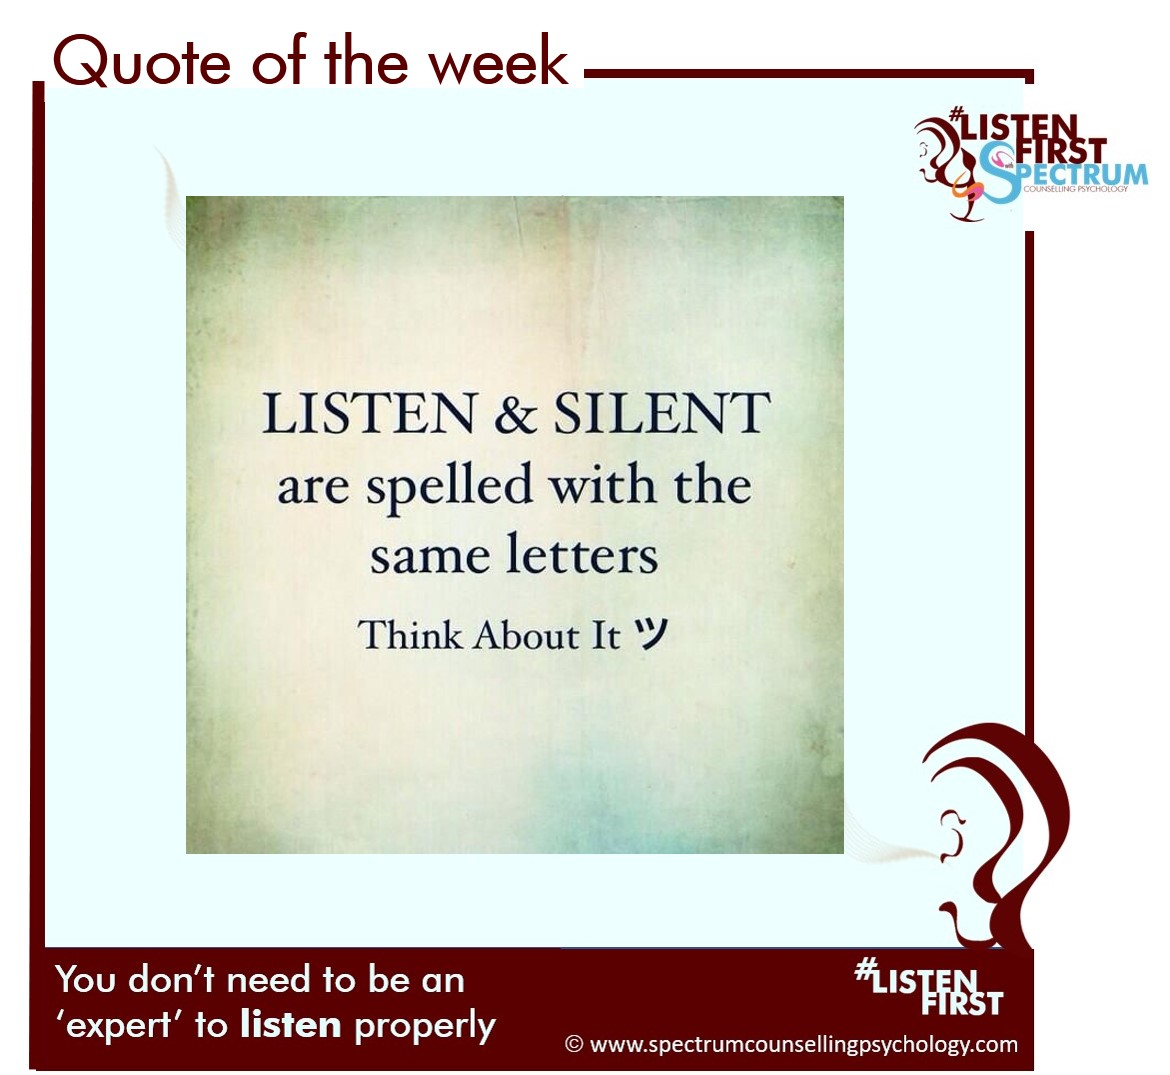 Quote of the week 1